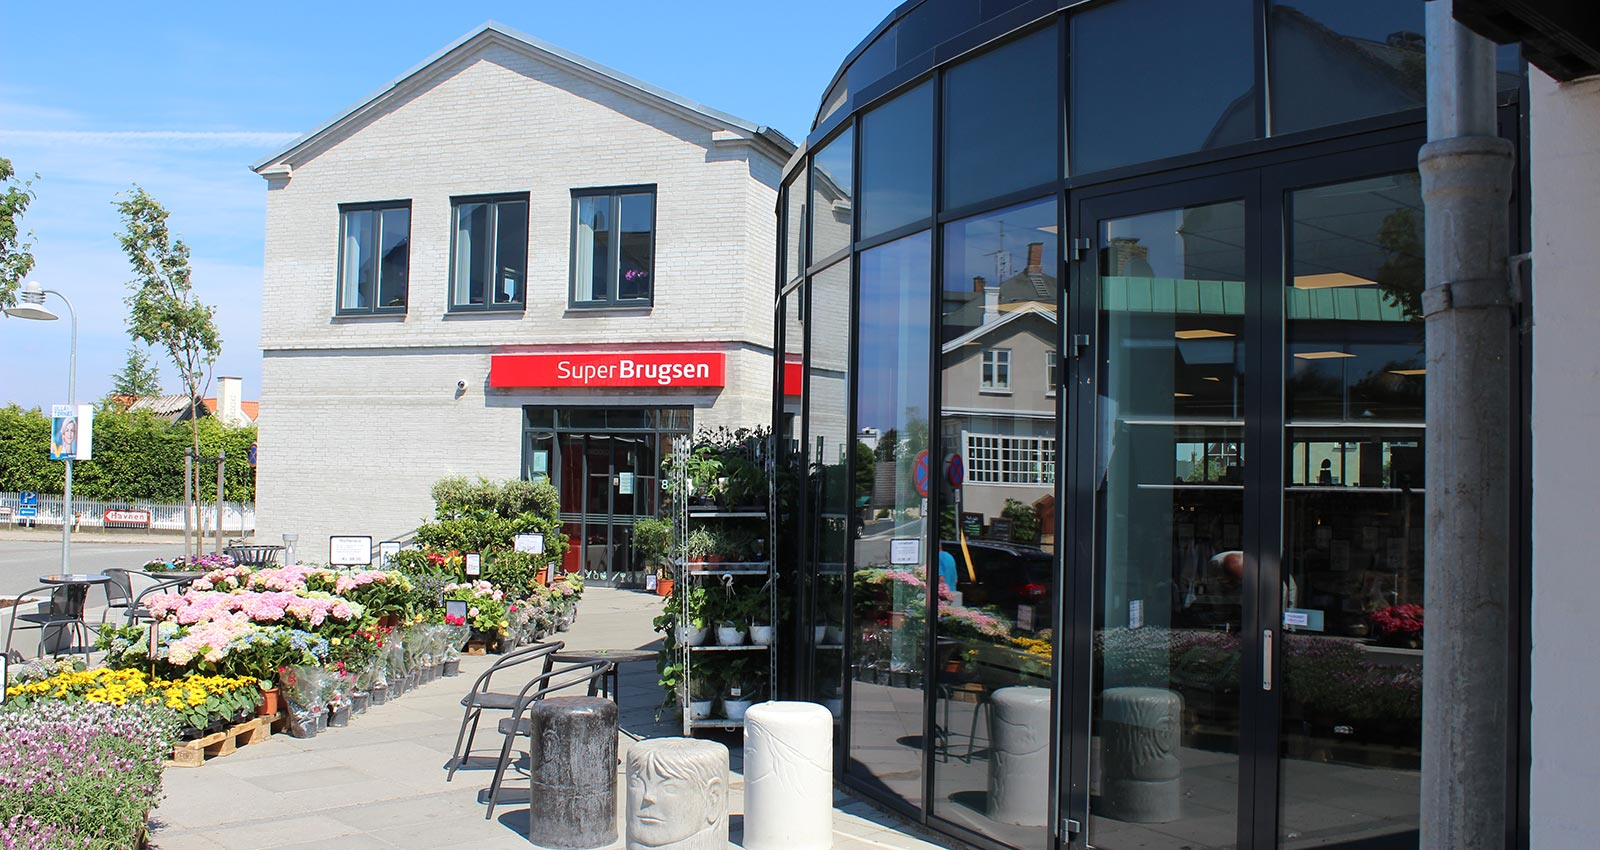 Super Brugsen Hornbæk - Extension of supermarket elegantly adapted to the townscape in Hornbæk